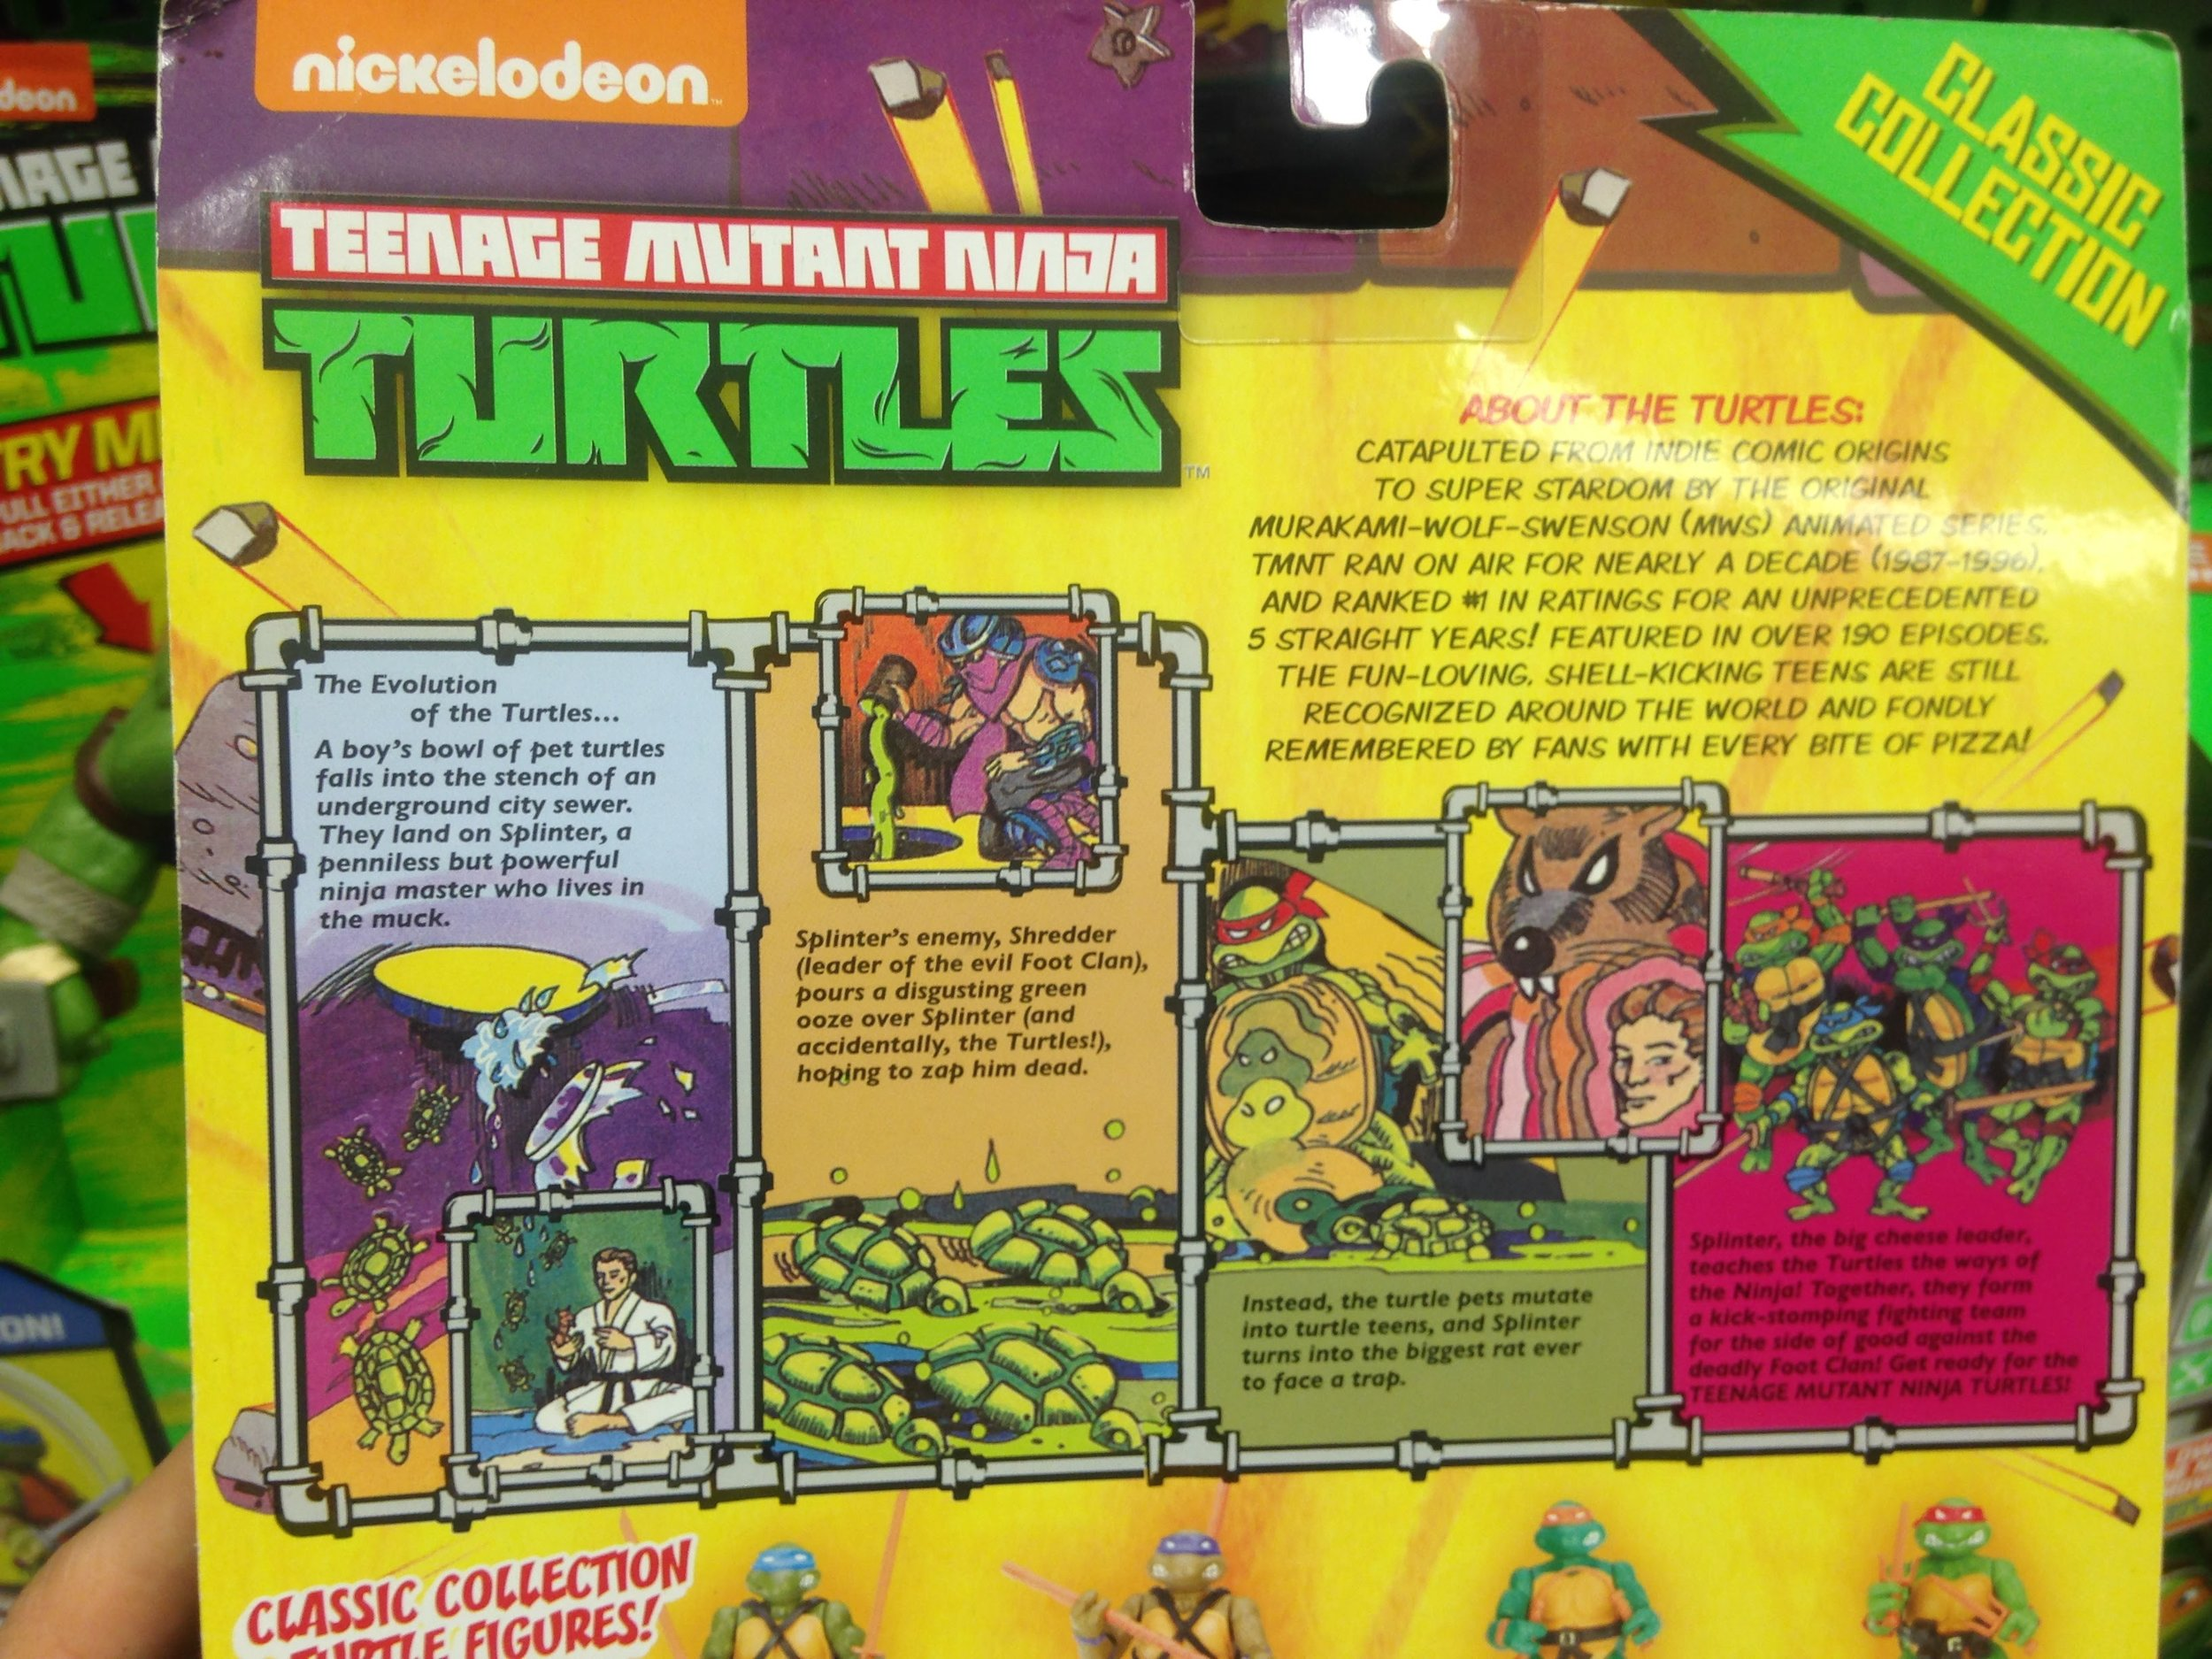 Still some of the best artwork on any toy packaging ever